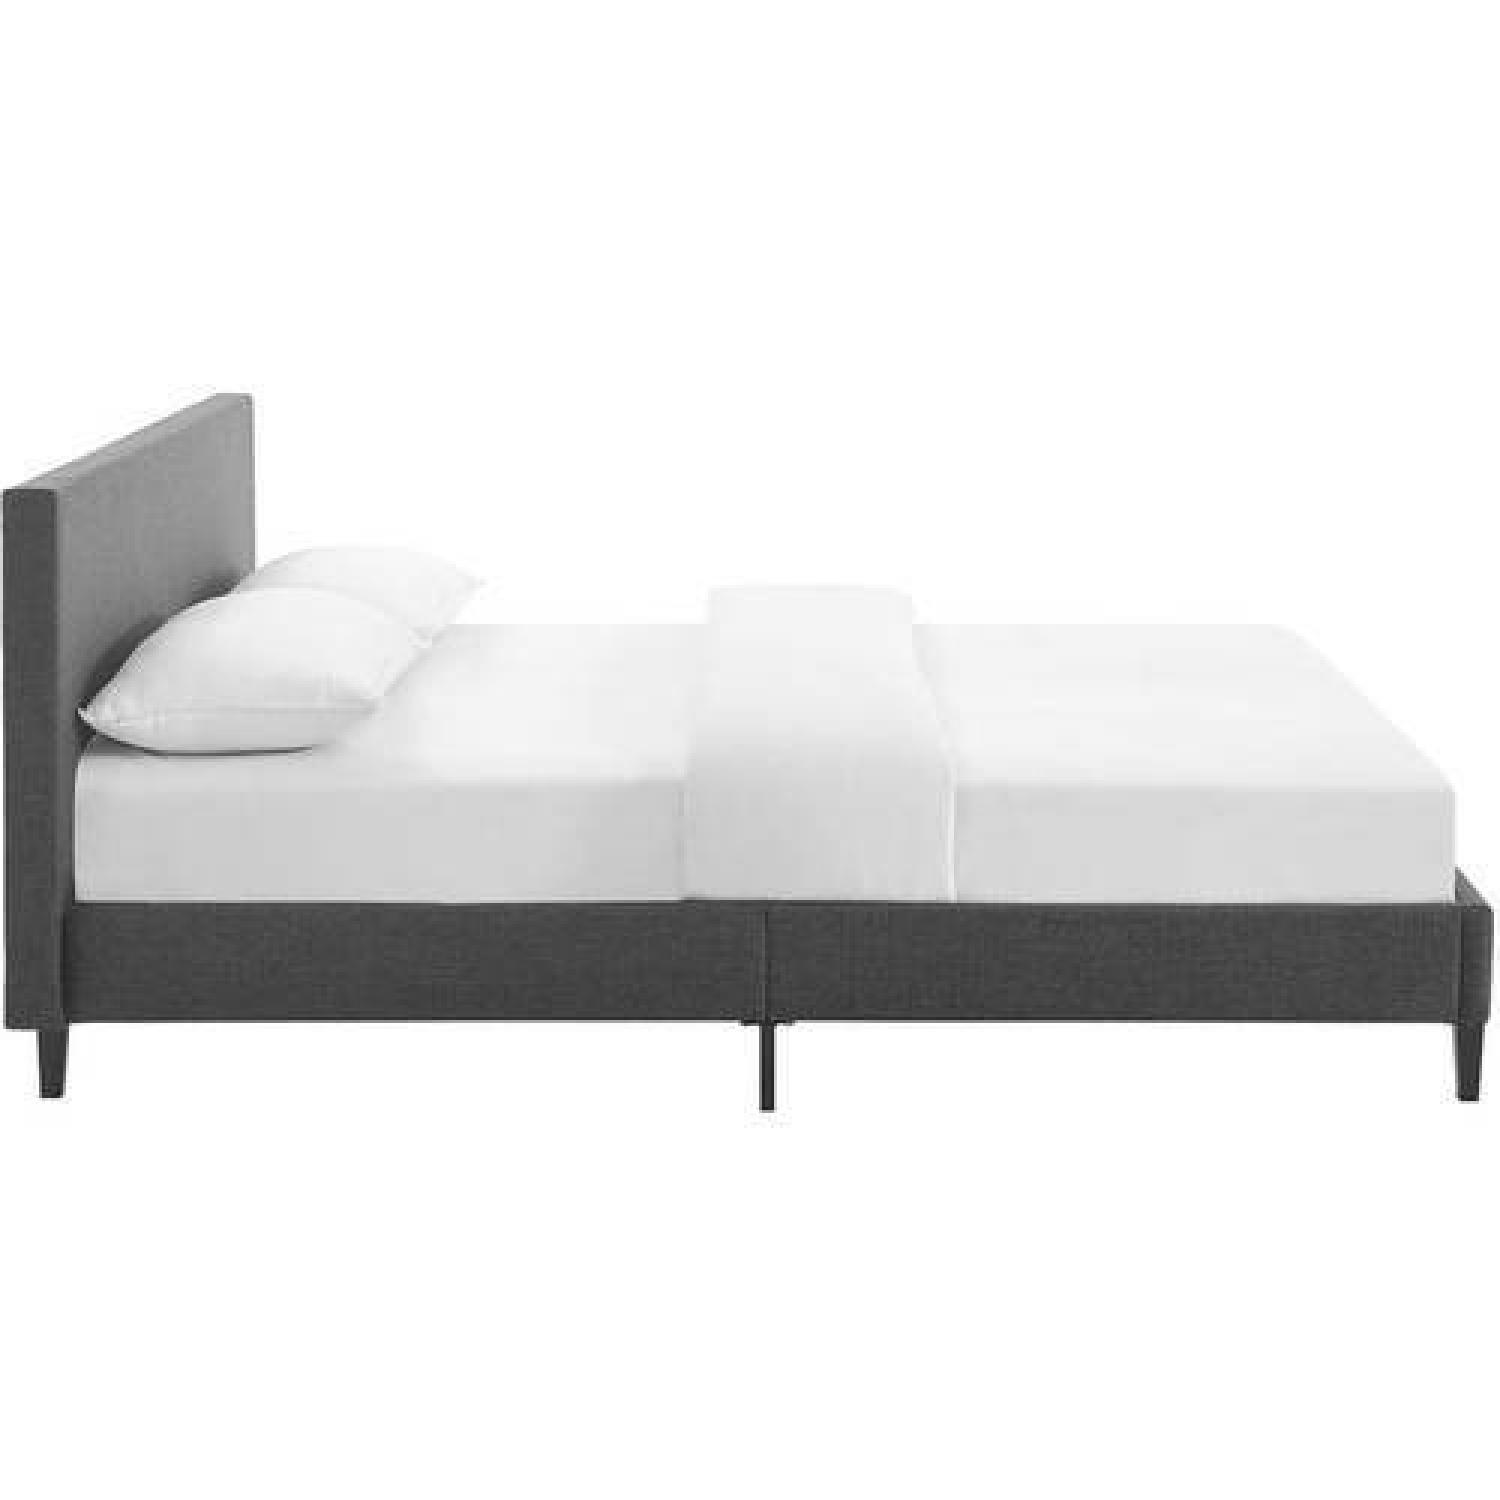 ... Modway Anya Fabric Full Size Platform Bed 1